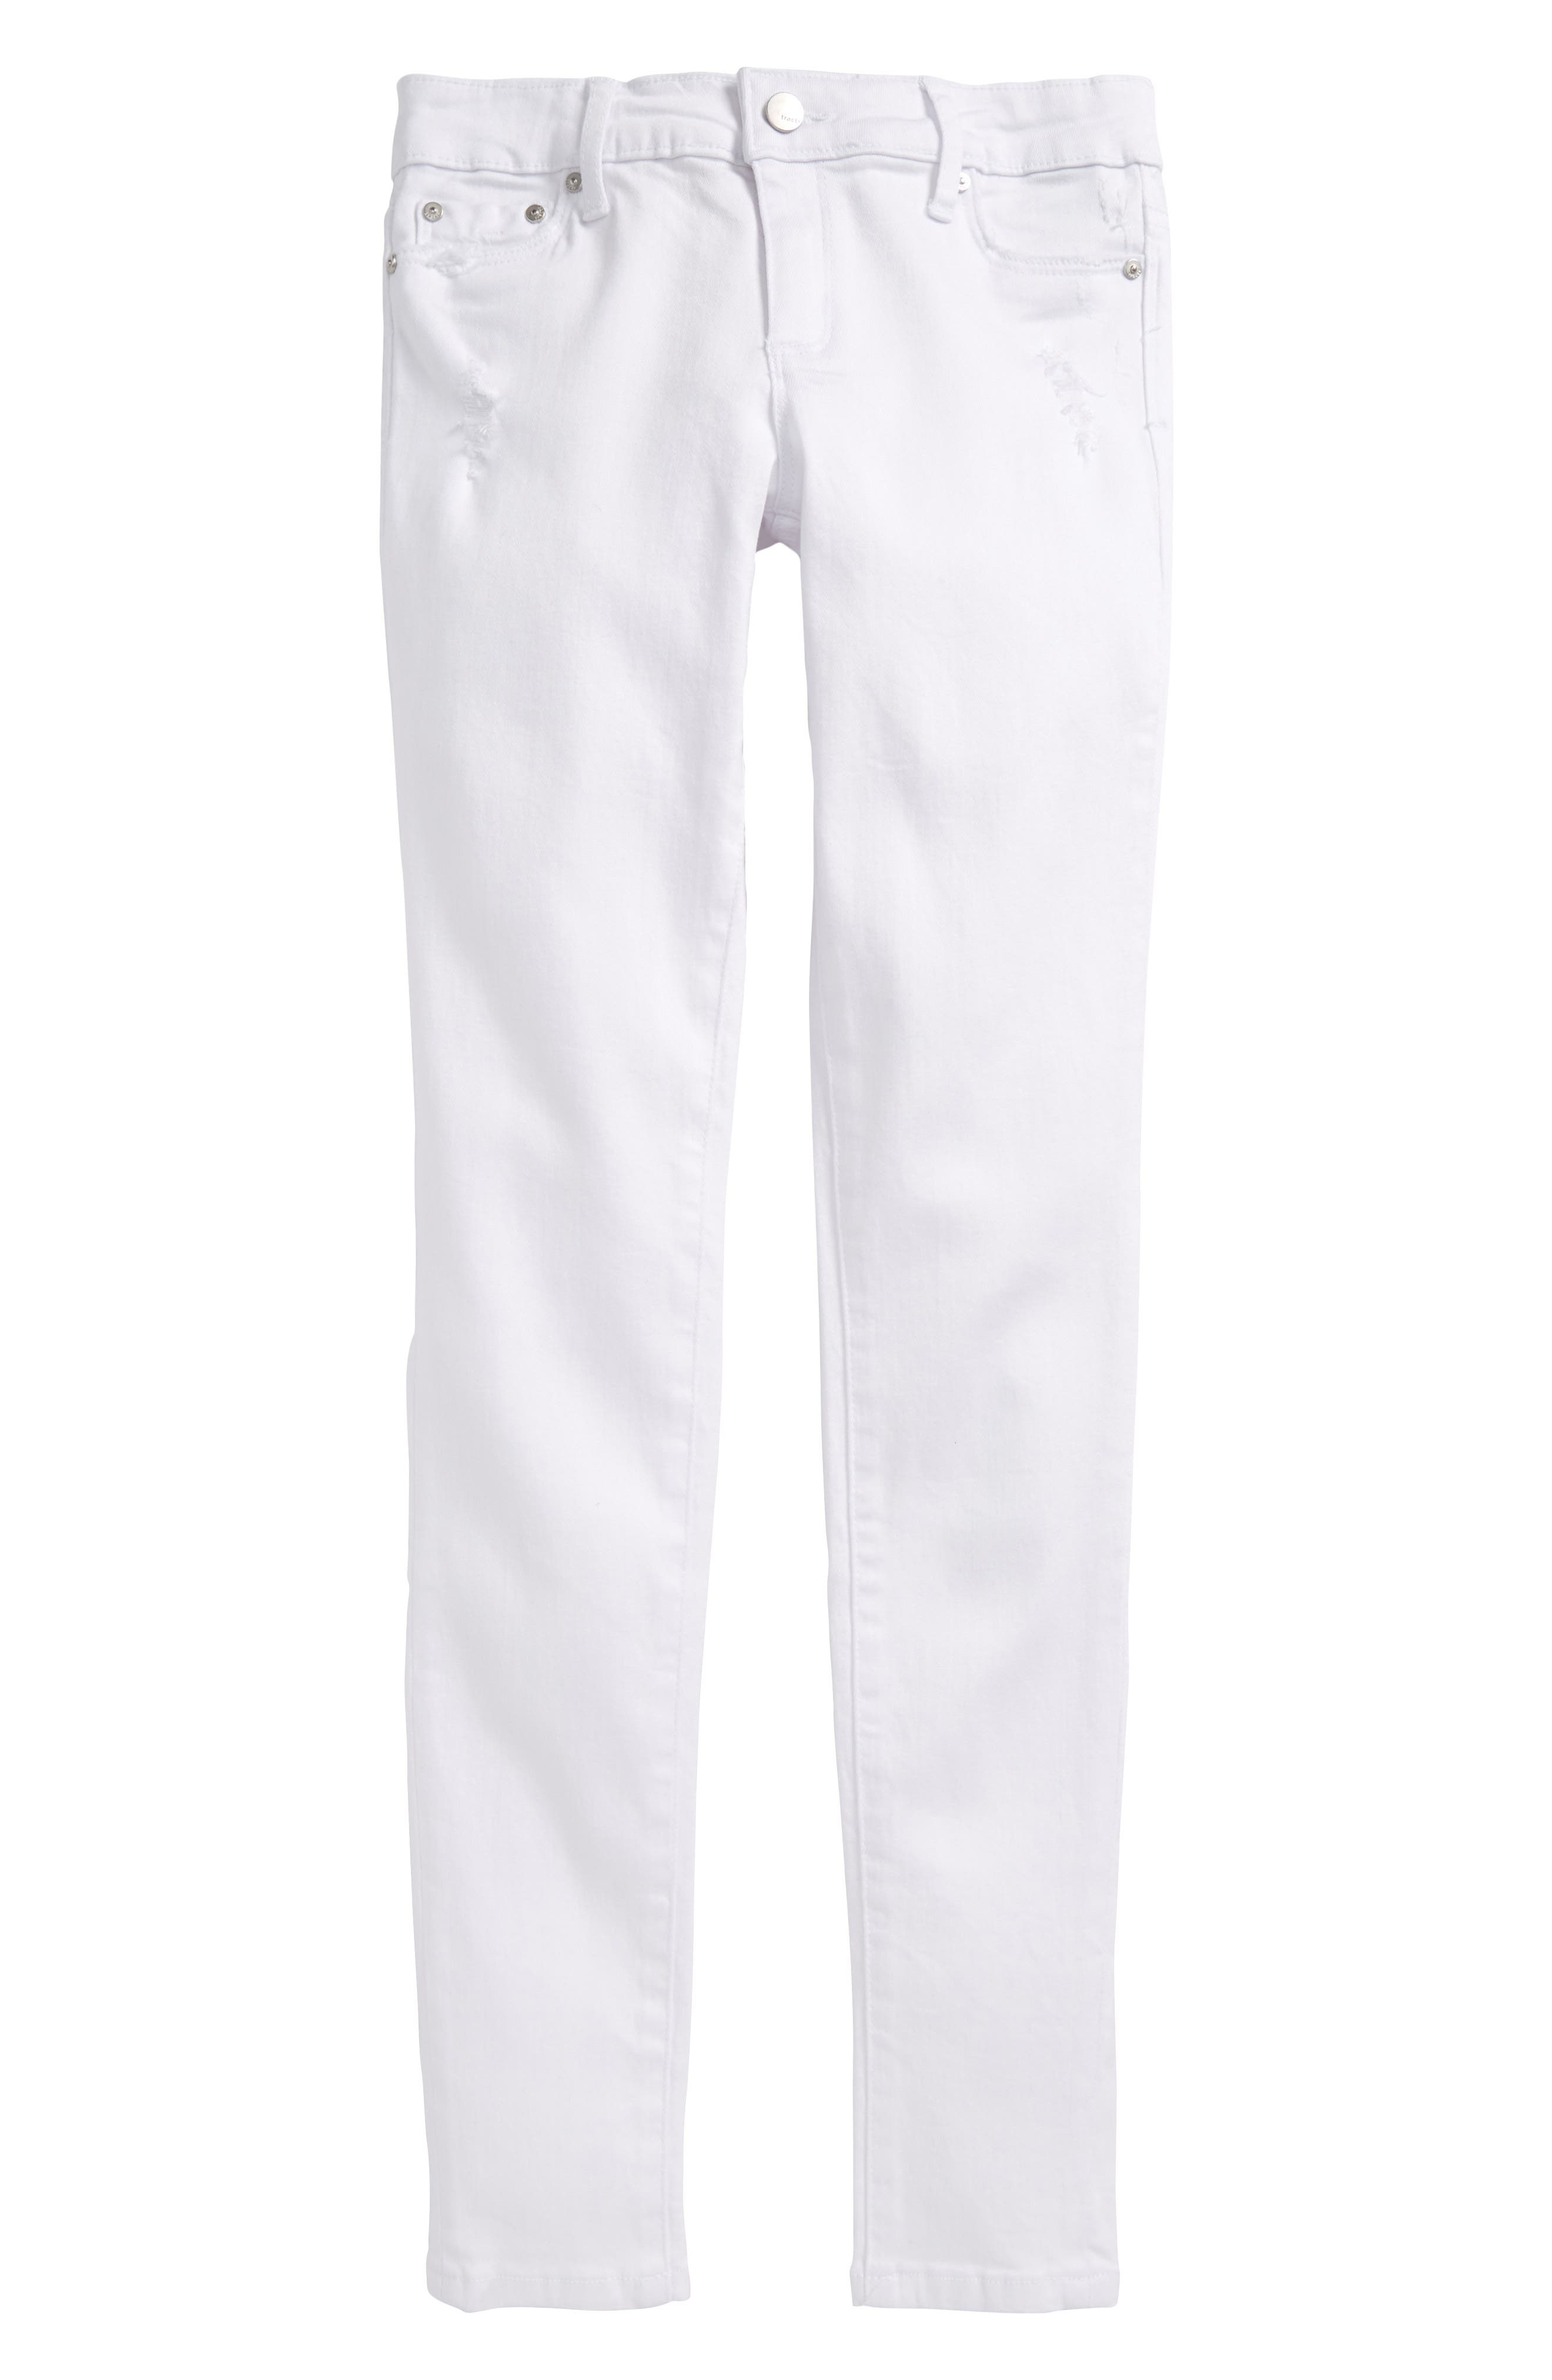 Deconstructed Skinny Jeans,                             Main thumbnail 1, color,                             White